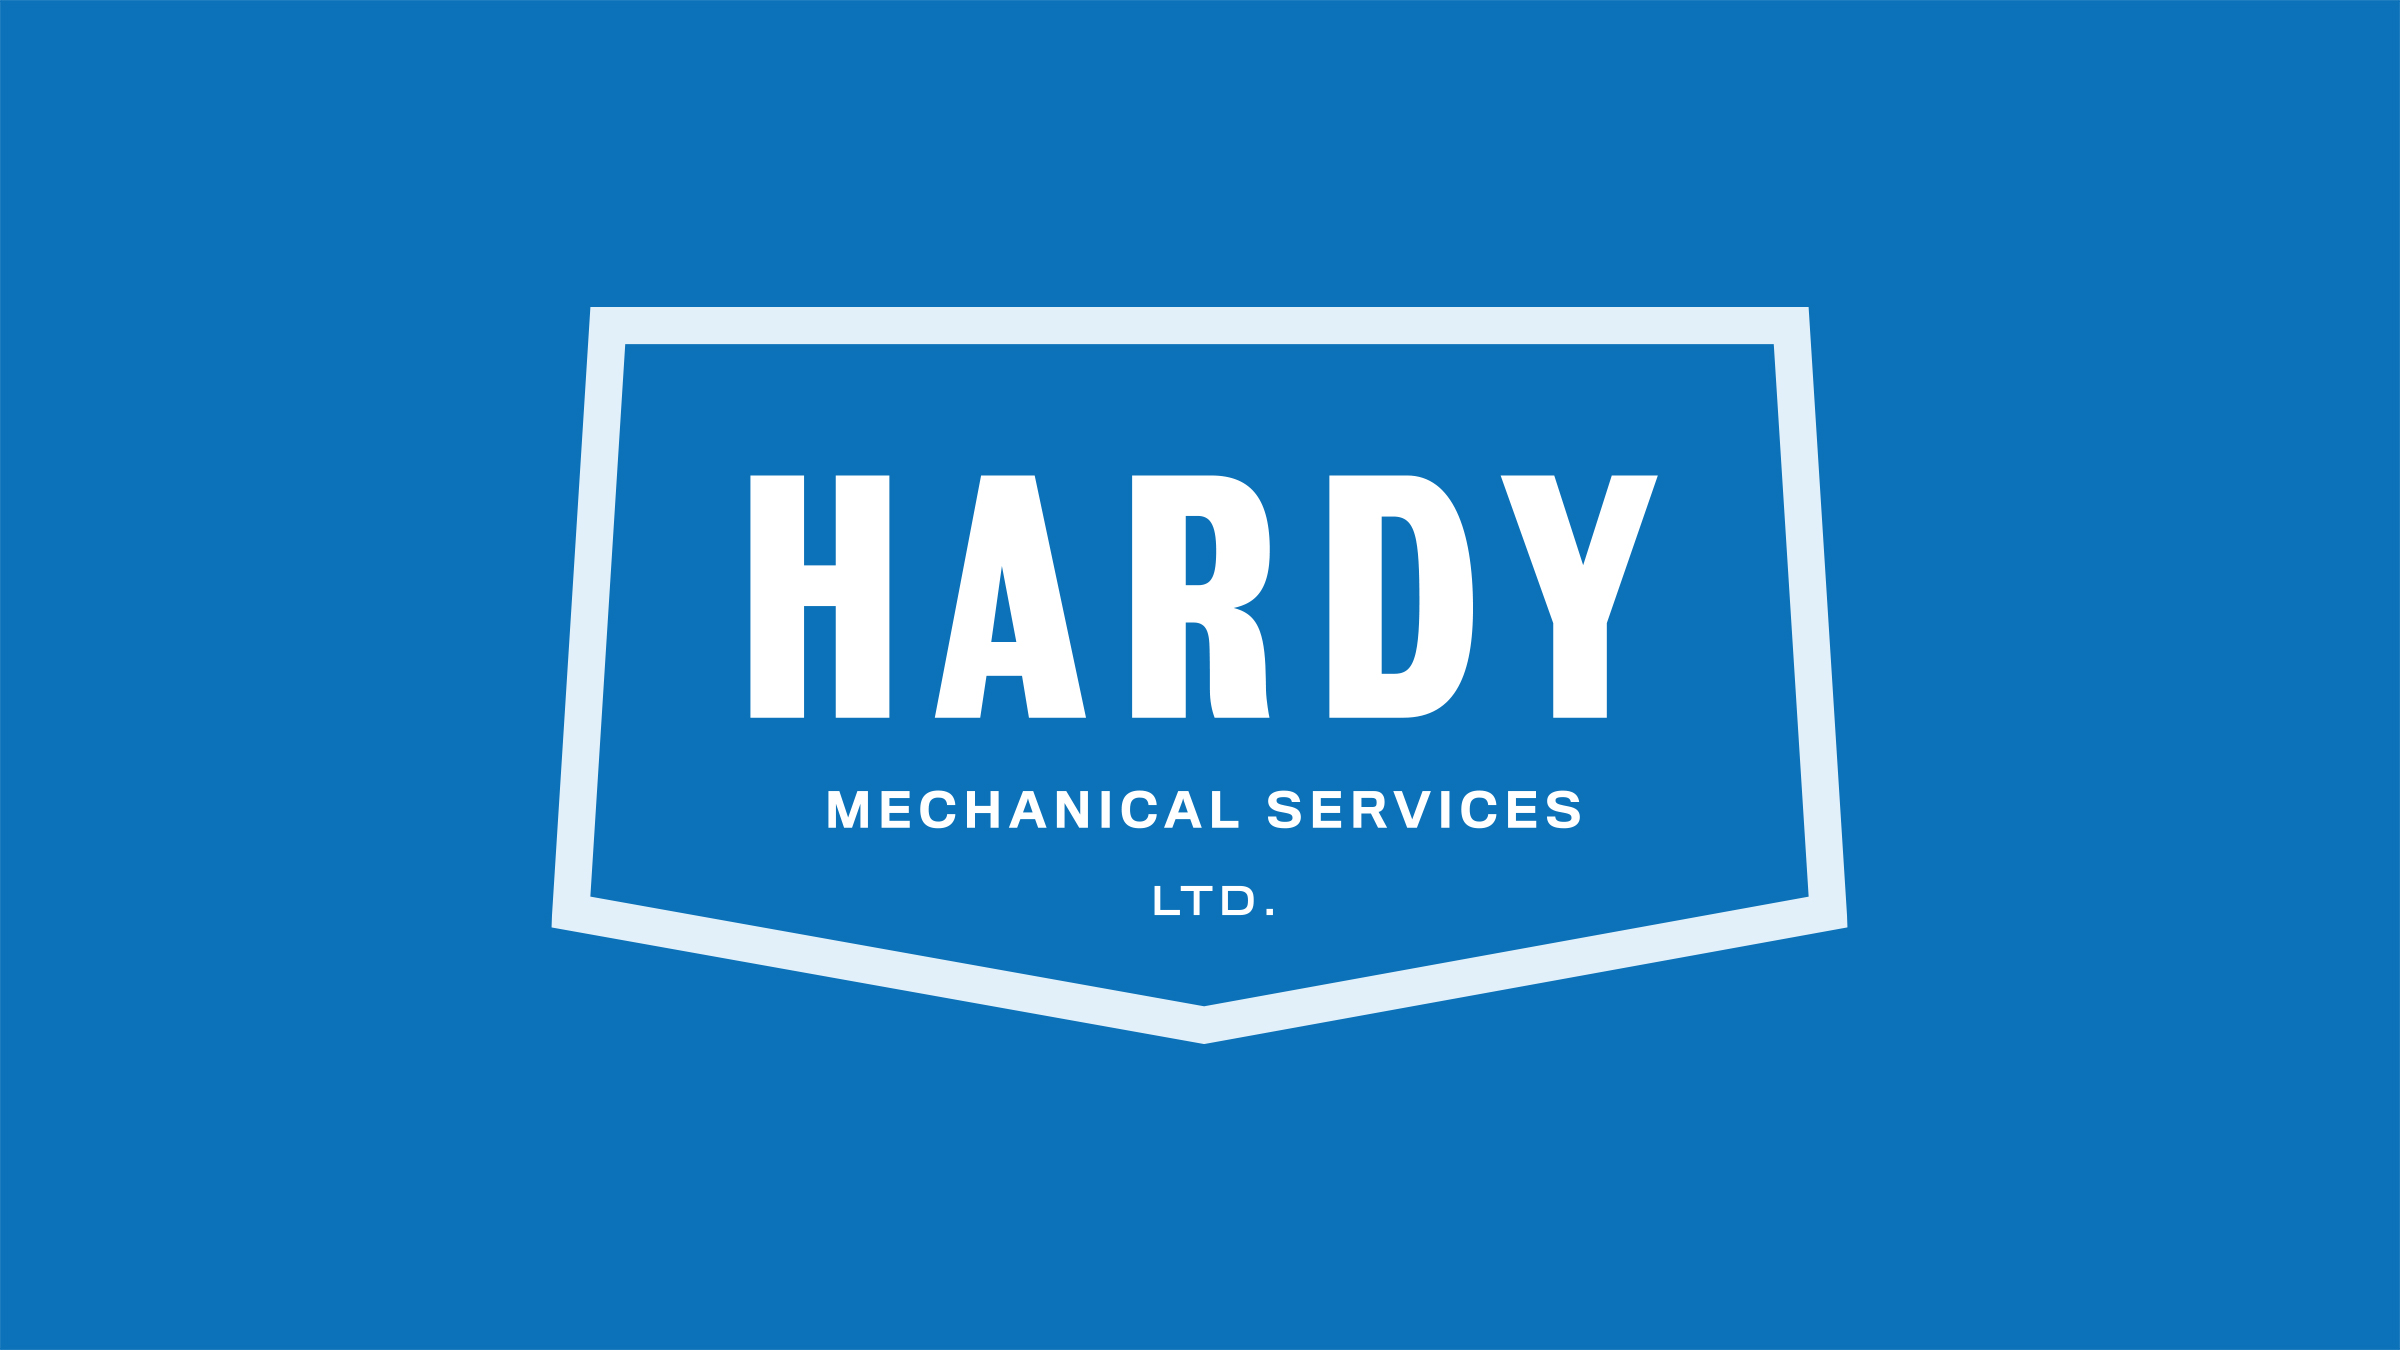 Hardy Mechanical Services brand logo white on blue